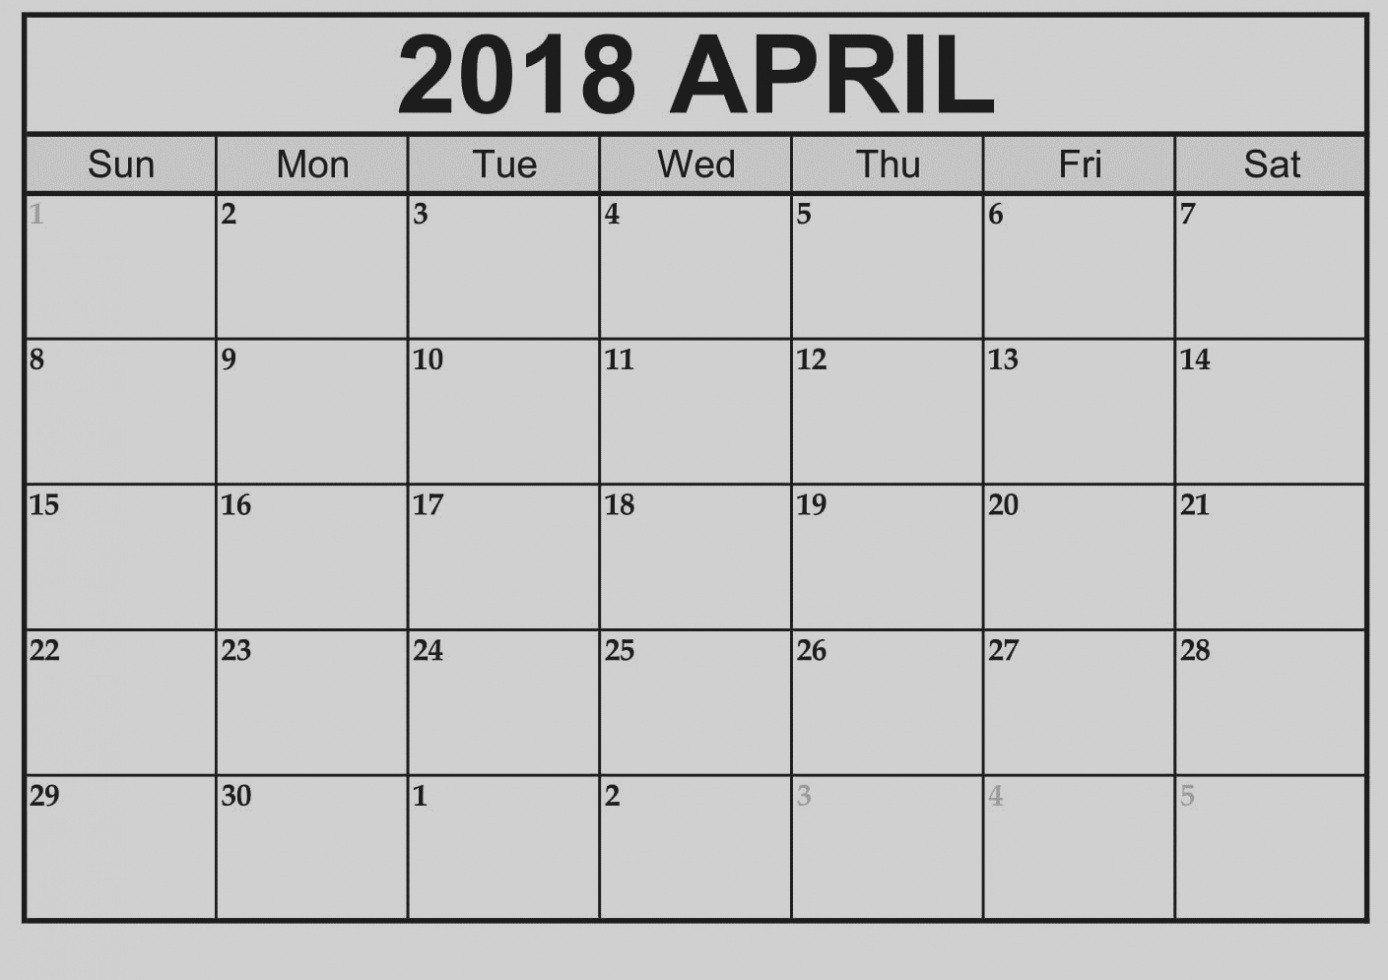 Generic Monthly Calendar Template Word Lovely Generic Monthly Calendar Template Word Cheatervz